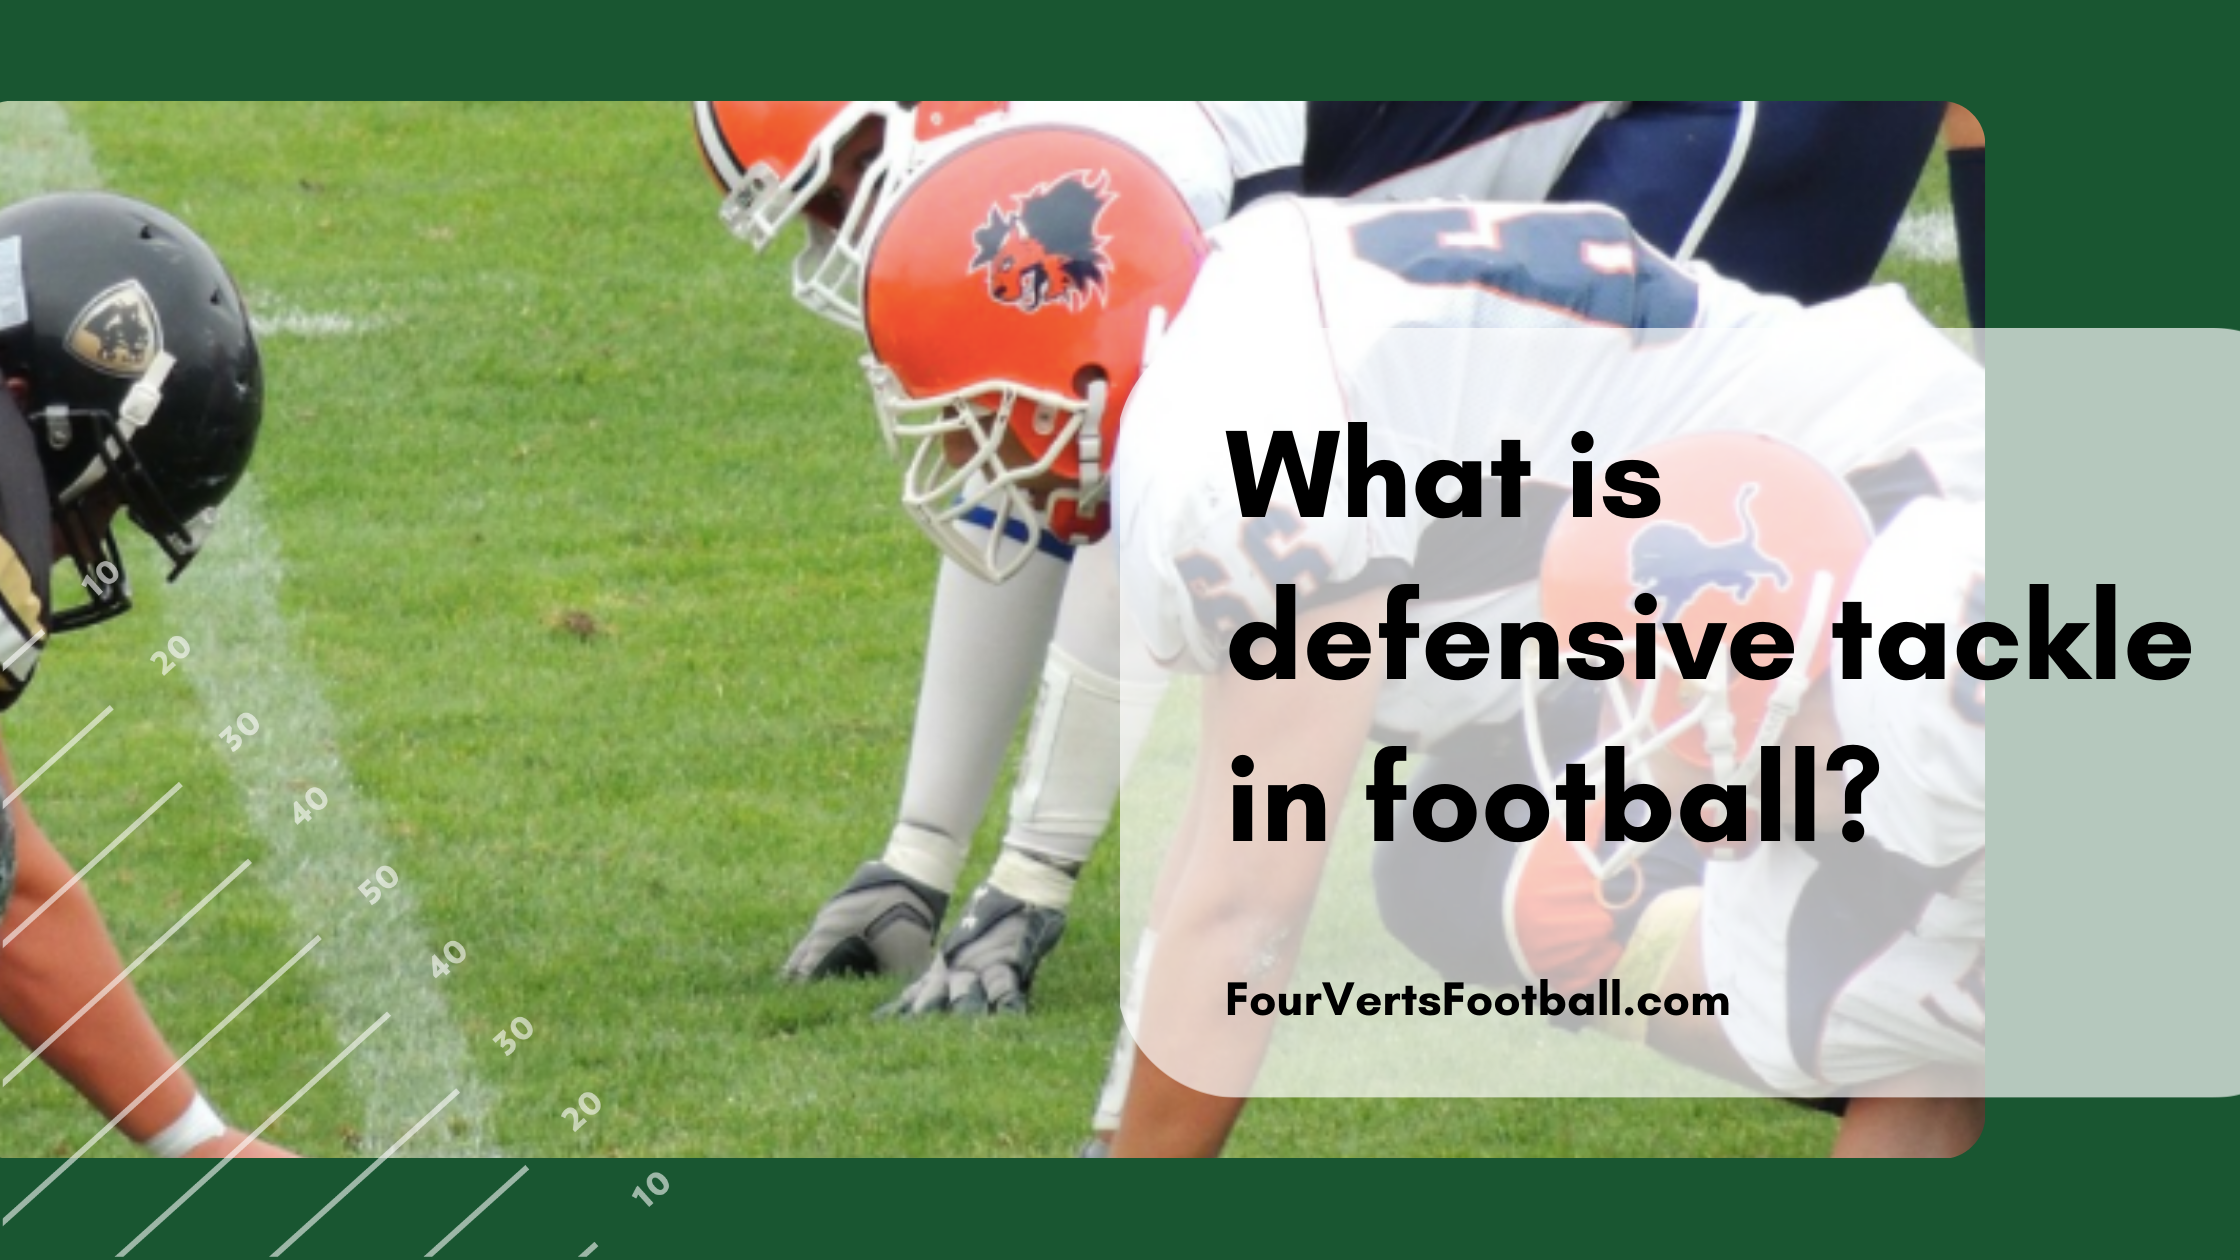 What is a defensive tackle